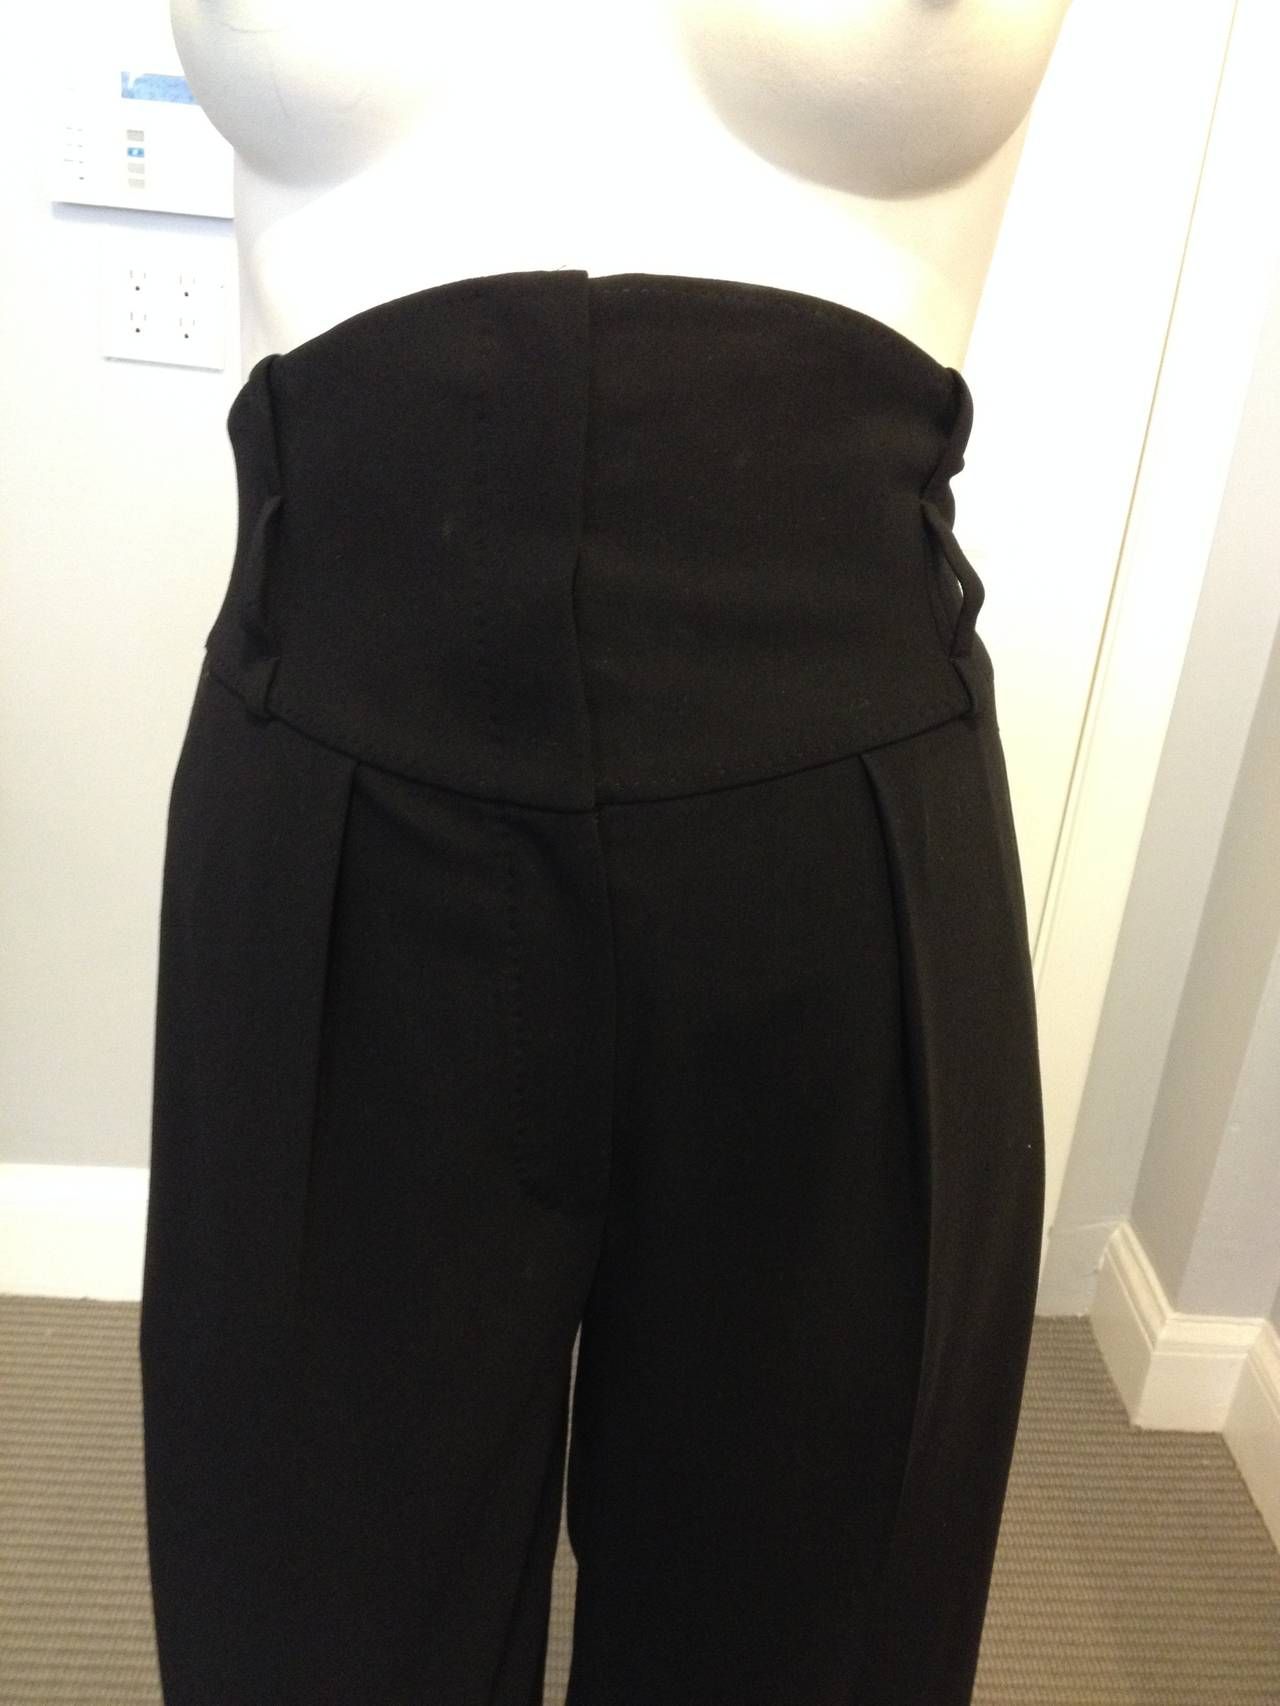 Hermes Black Pant with High Waist 2